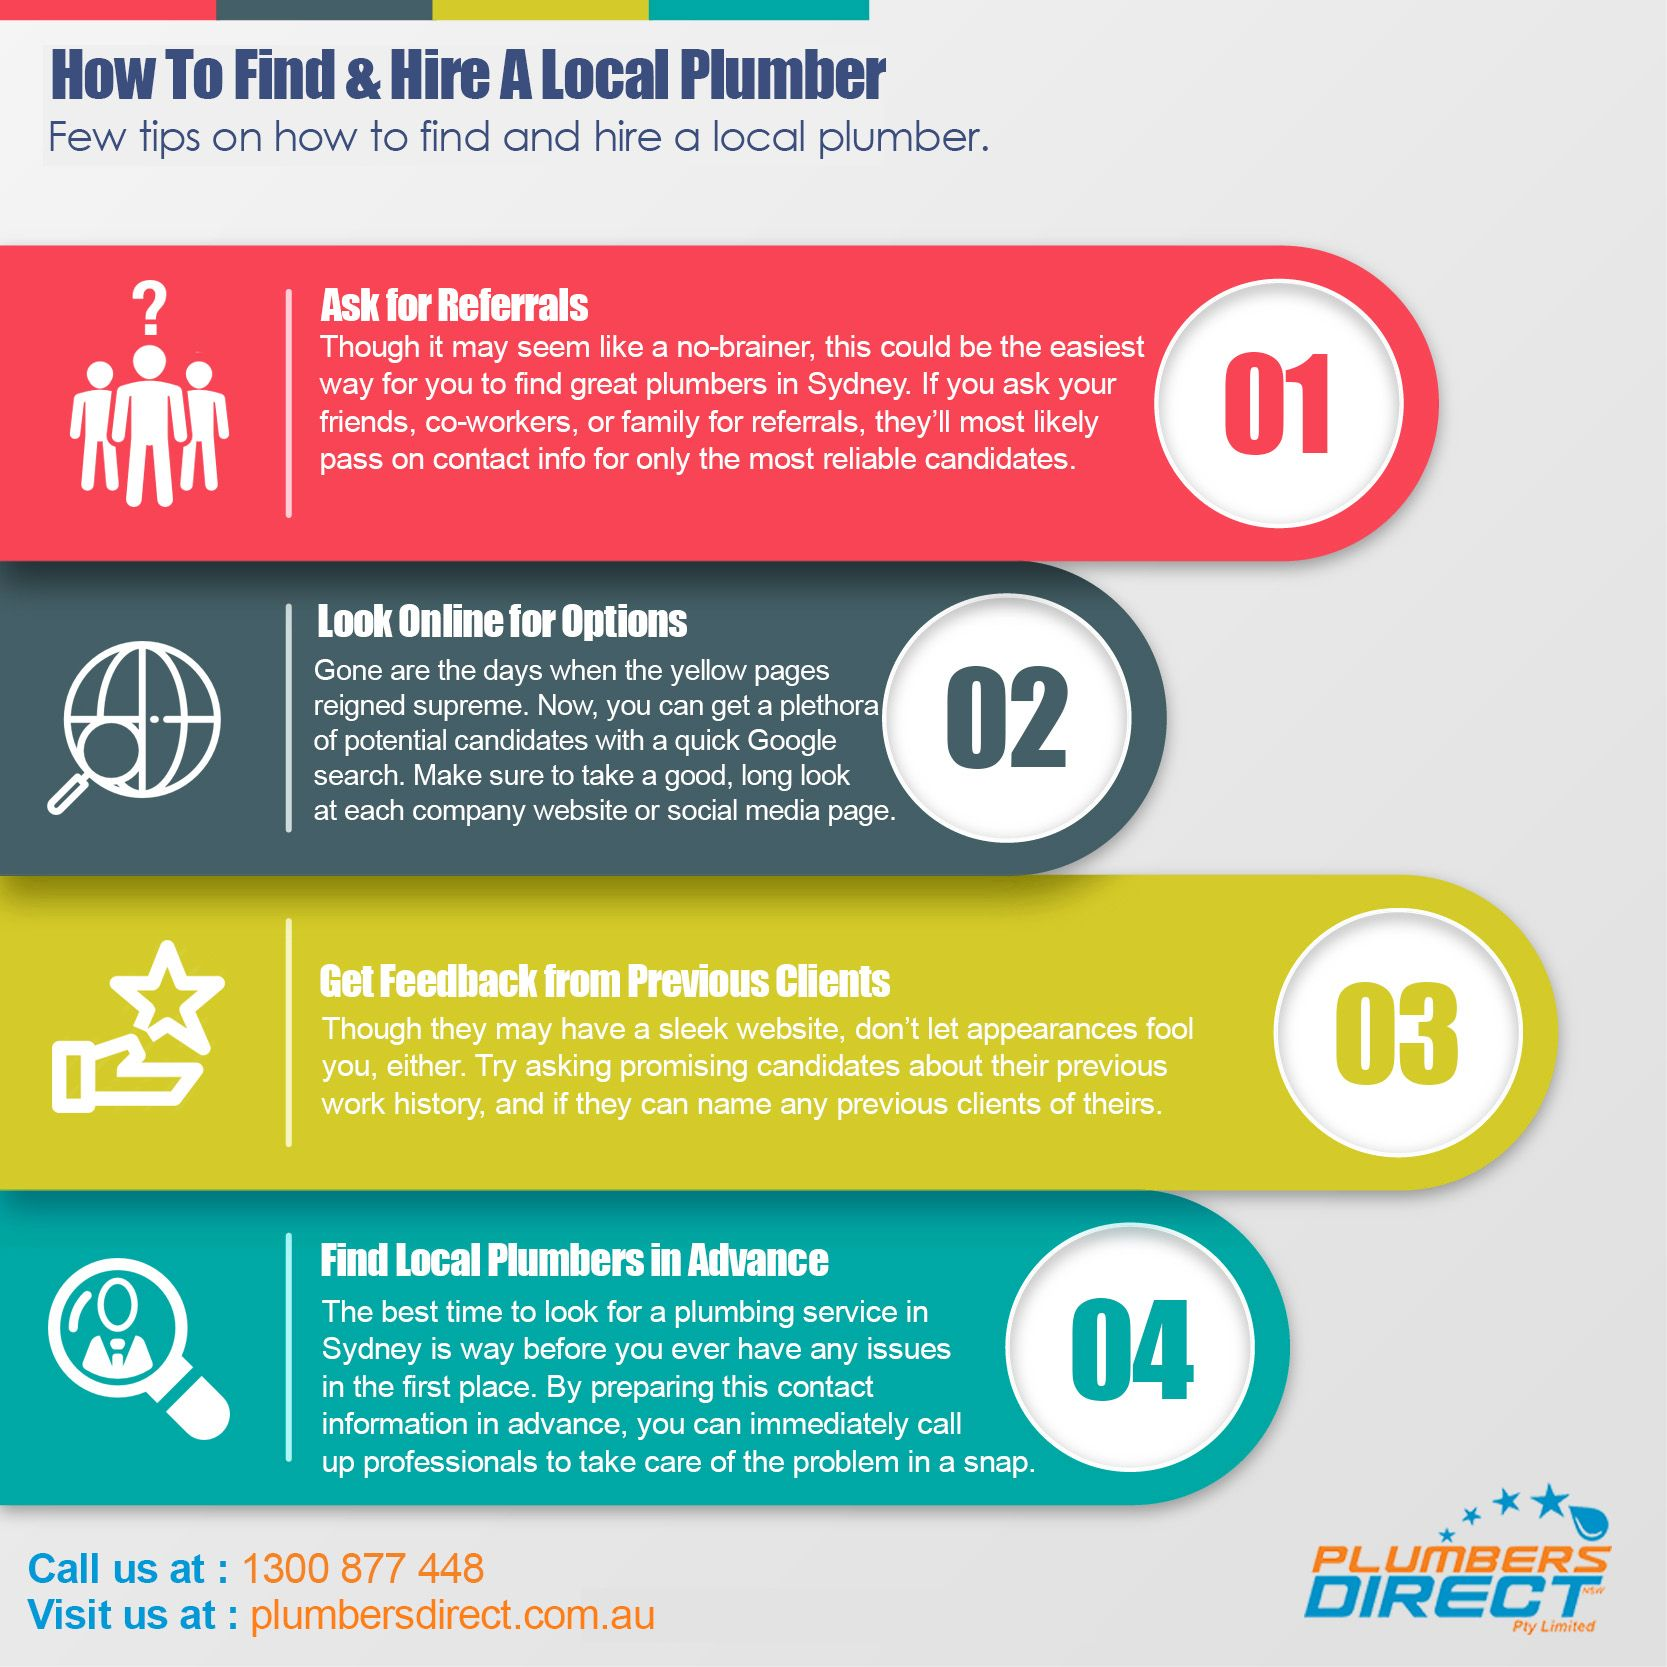 How To Find Hire A Local Plumber Cash Management Infographic